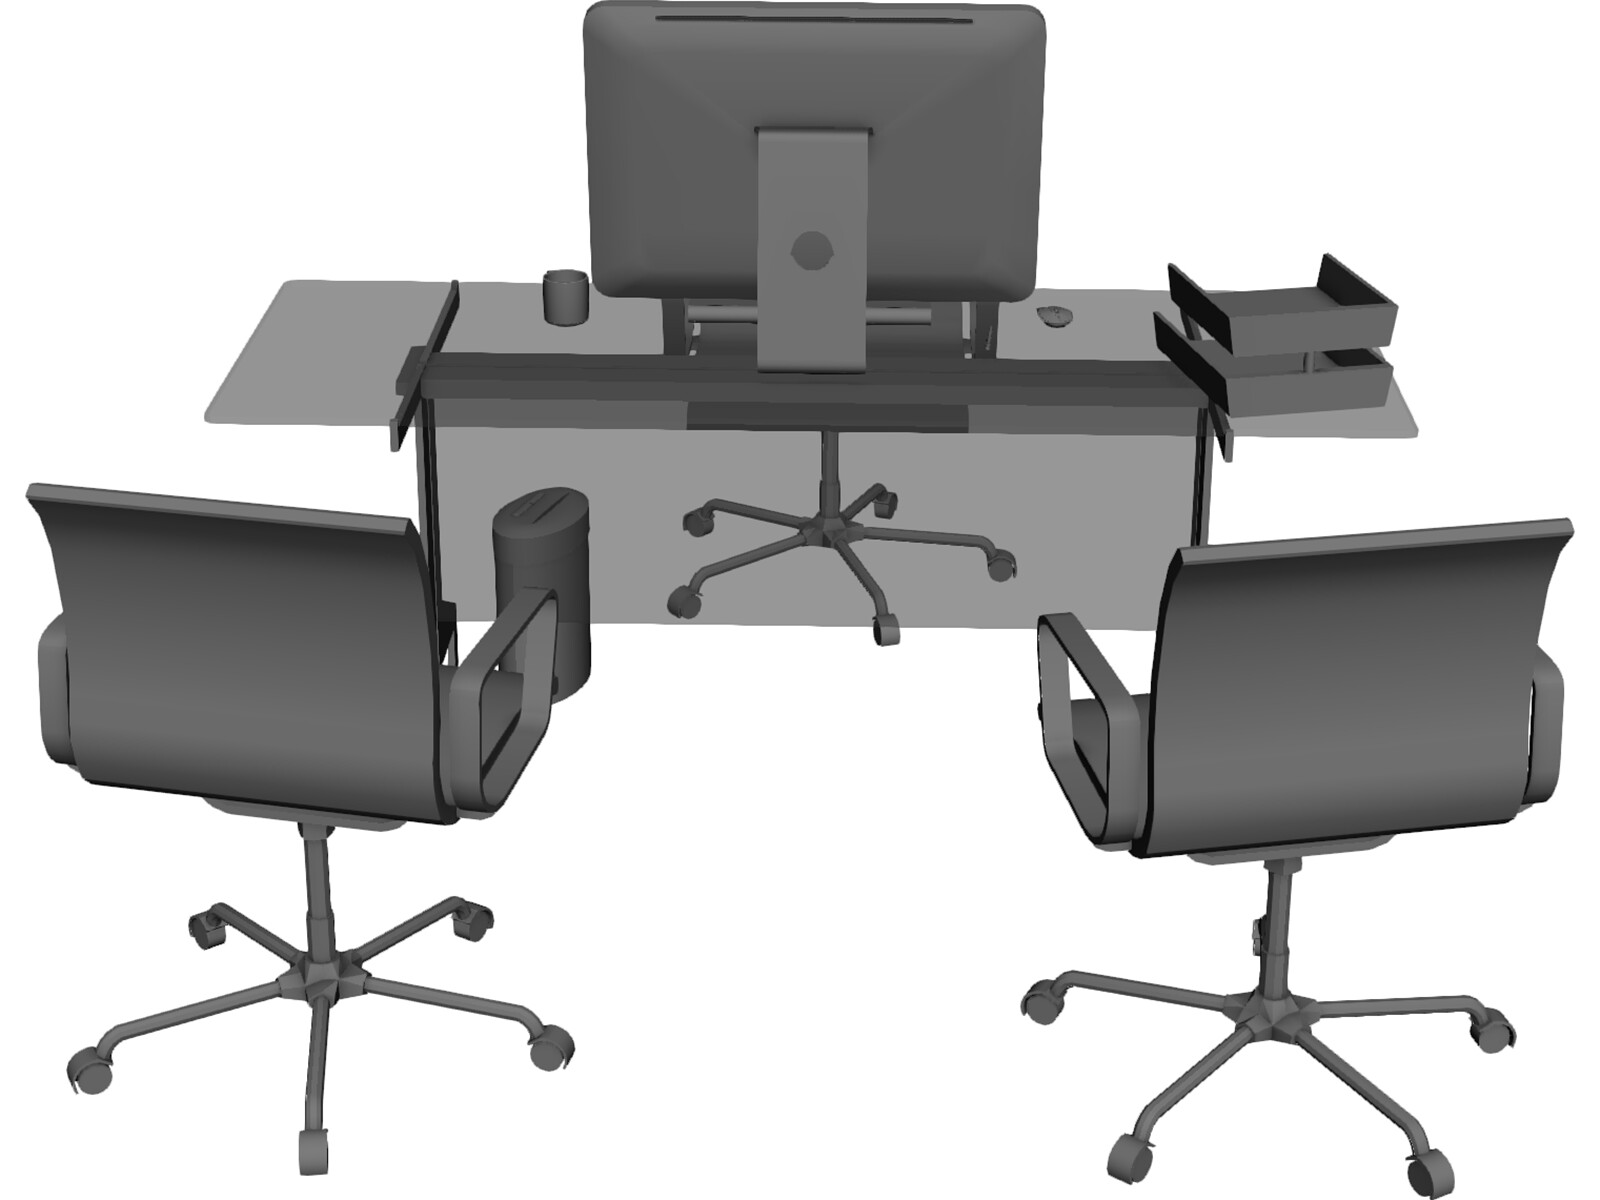 Office desk and chairs 3d model 3d cad browser for Chair 3d model maya